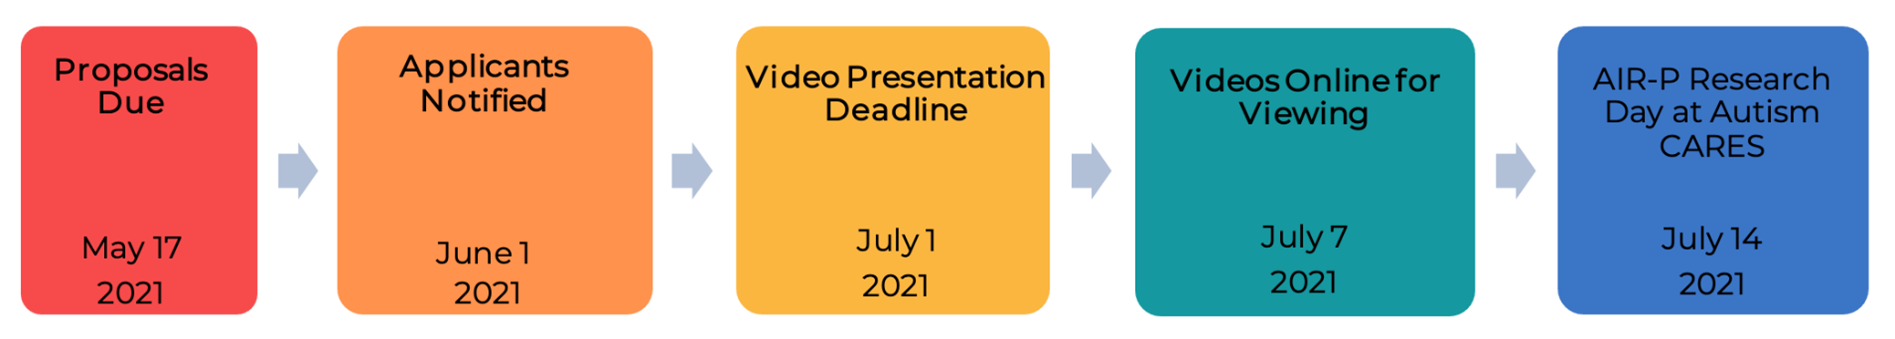 Proposals Due May 17 / Applicants Notified  June 1 2021 / Video Presentation Deadline July 1 2021 / Video Online View July 7, 2021 / AIR-P Research Day at Autism CARES July 14 2021